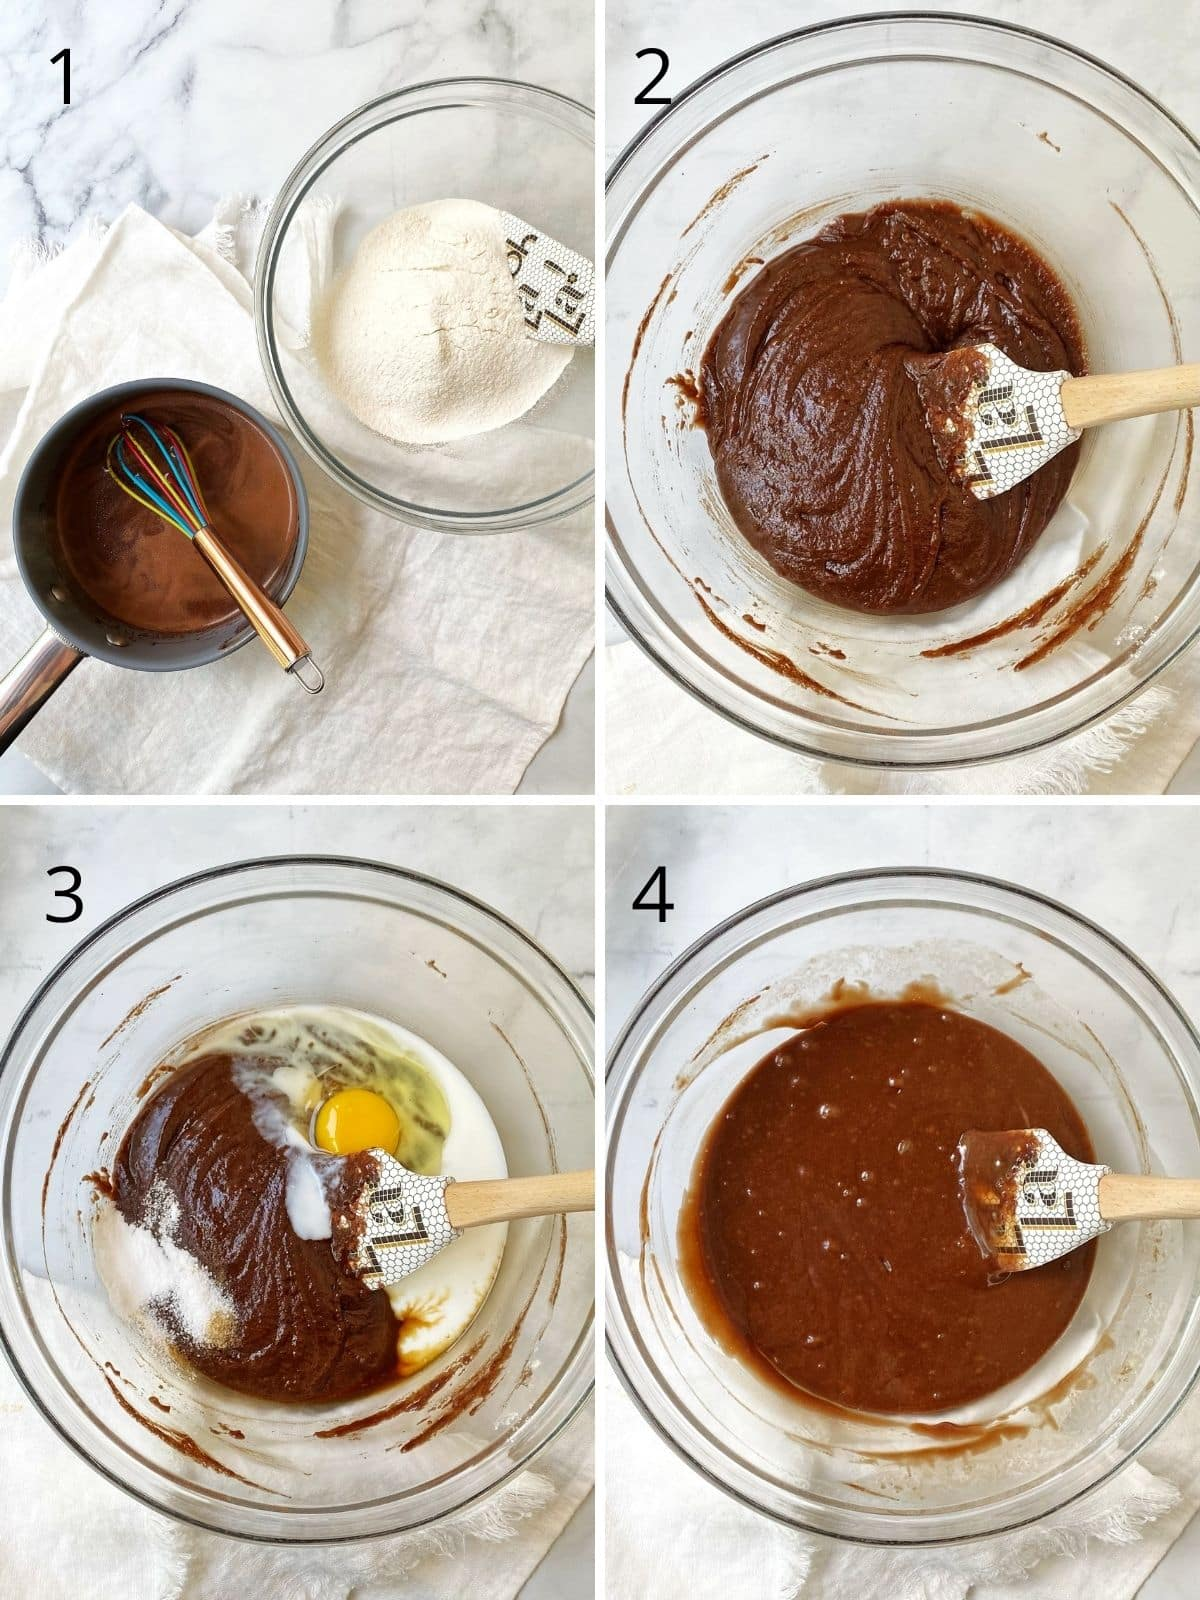 bowl of flour and sugar and a saucepan of butter, oil melted with cocoa powder, bowl of flour and butter mixture mixed together, bowl with eggs and buttermilk added, and bowl of prepared batter